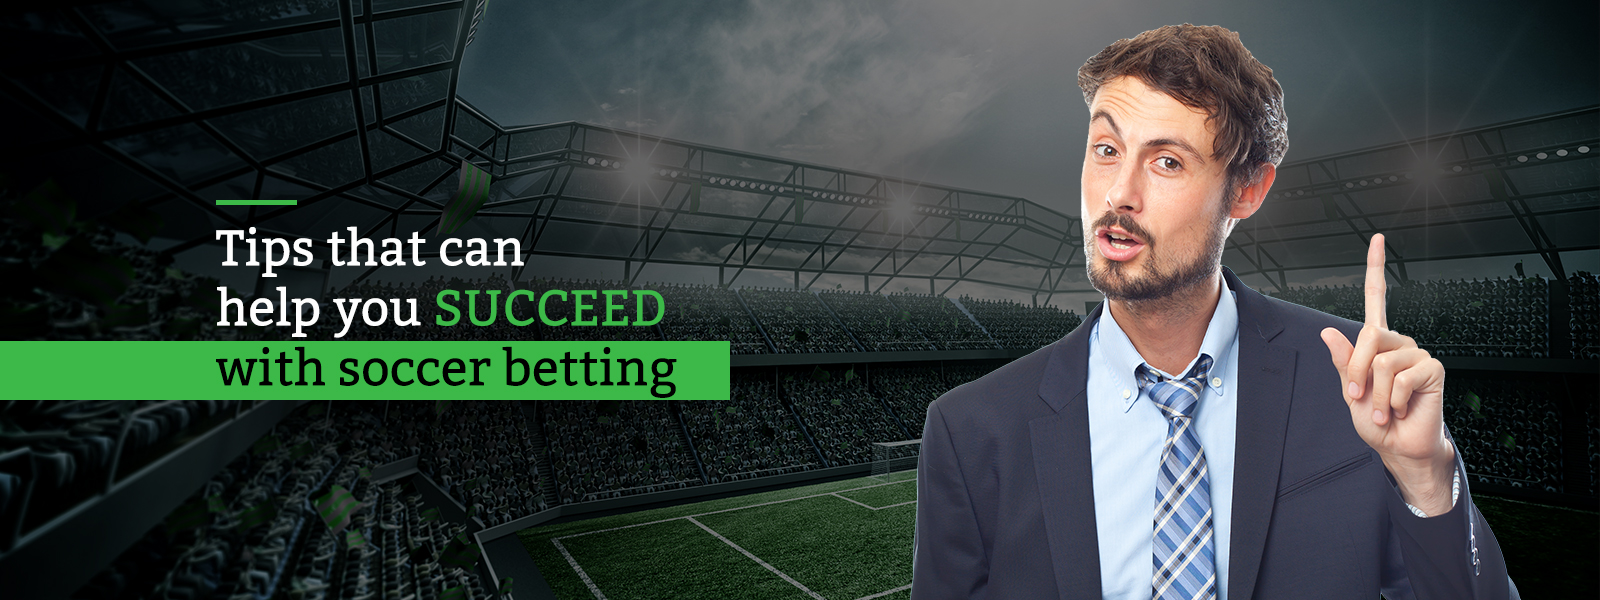 Tips that can help you succeed with soccer betting